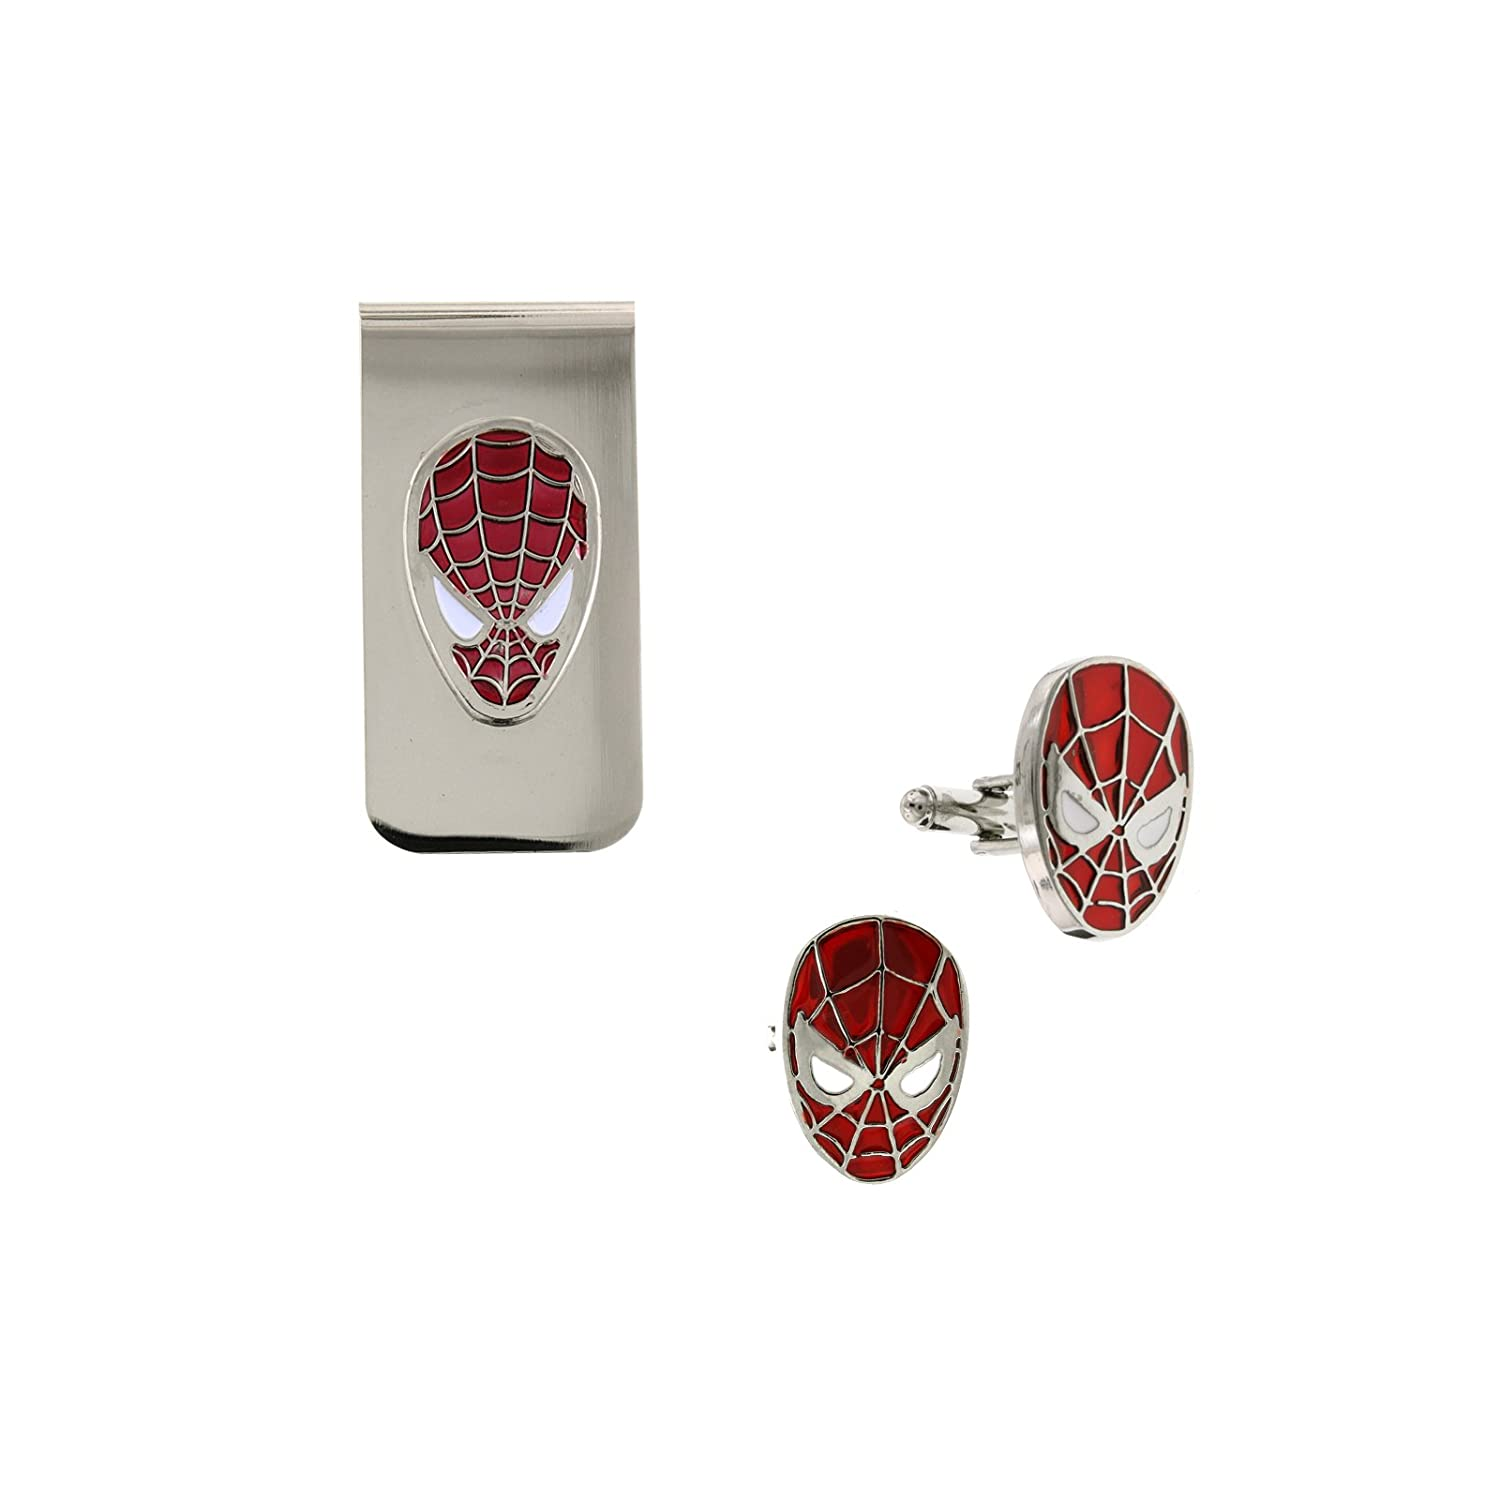 Spider-man Cuff Links and Money Clip Boxed Set Officially Licensed by MARVEL + Comic Con Exclusive